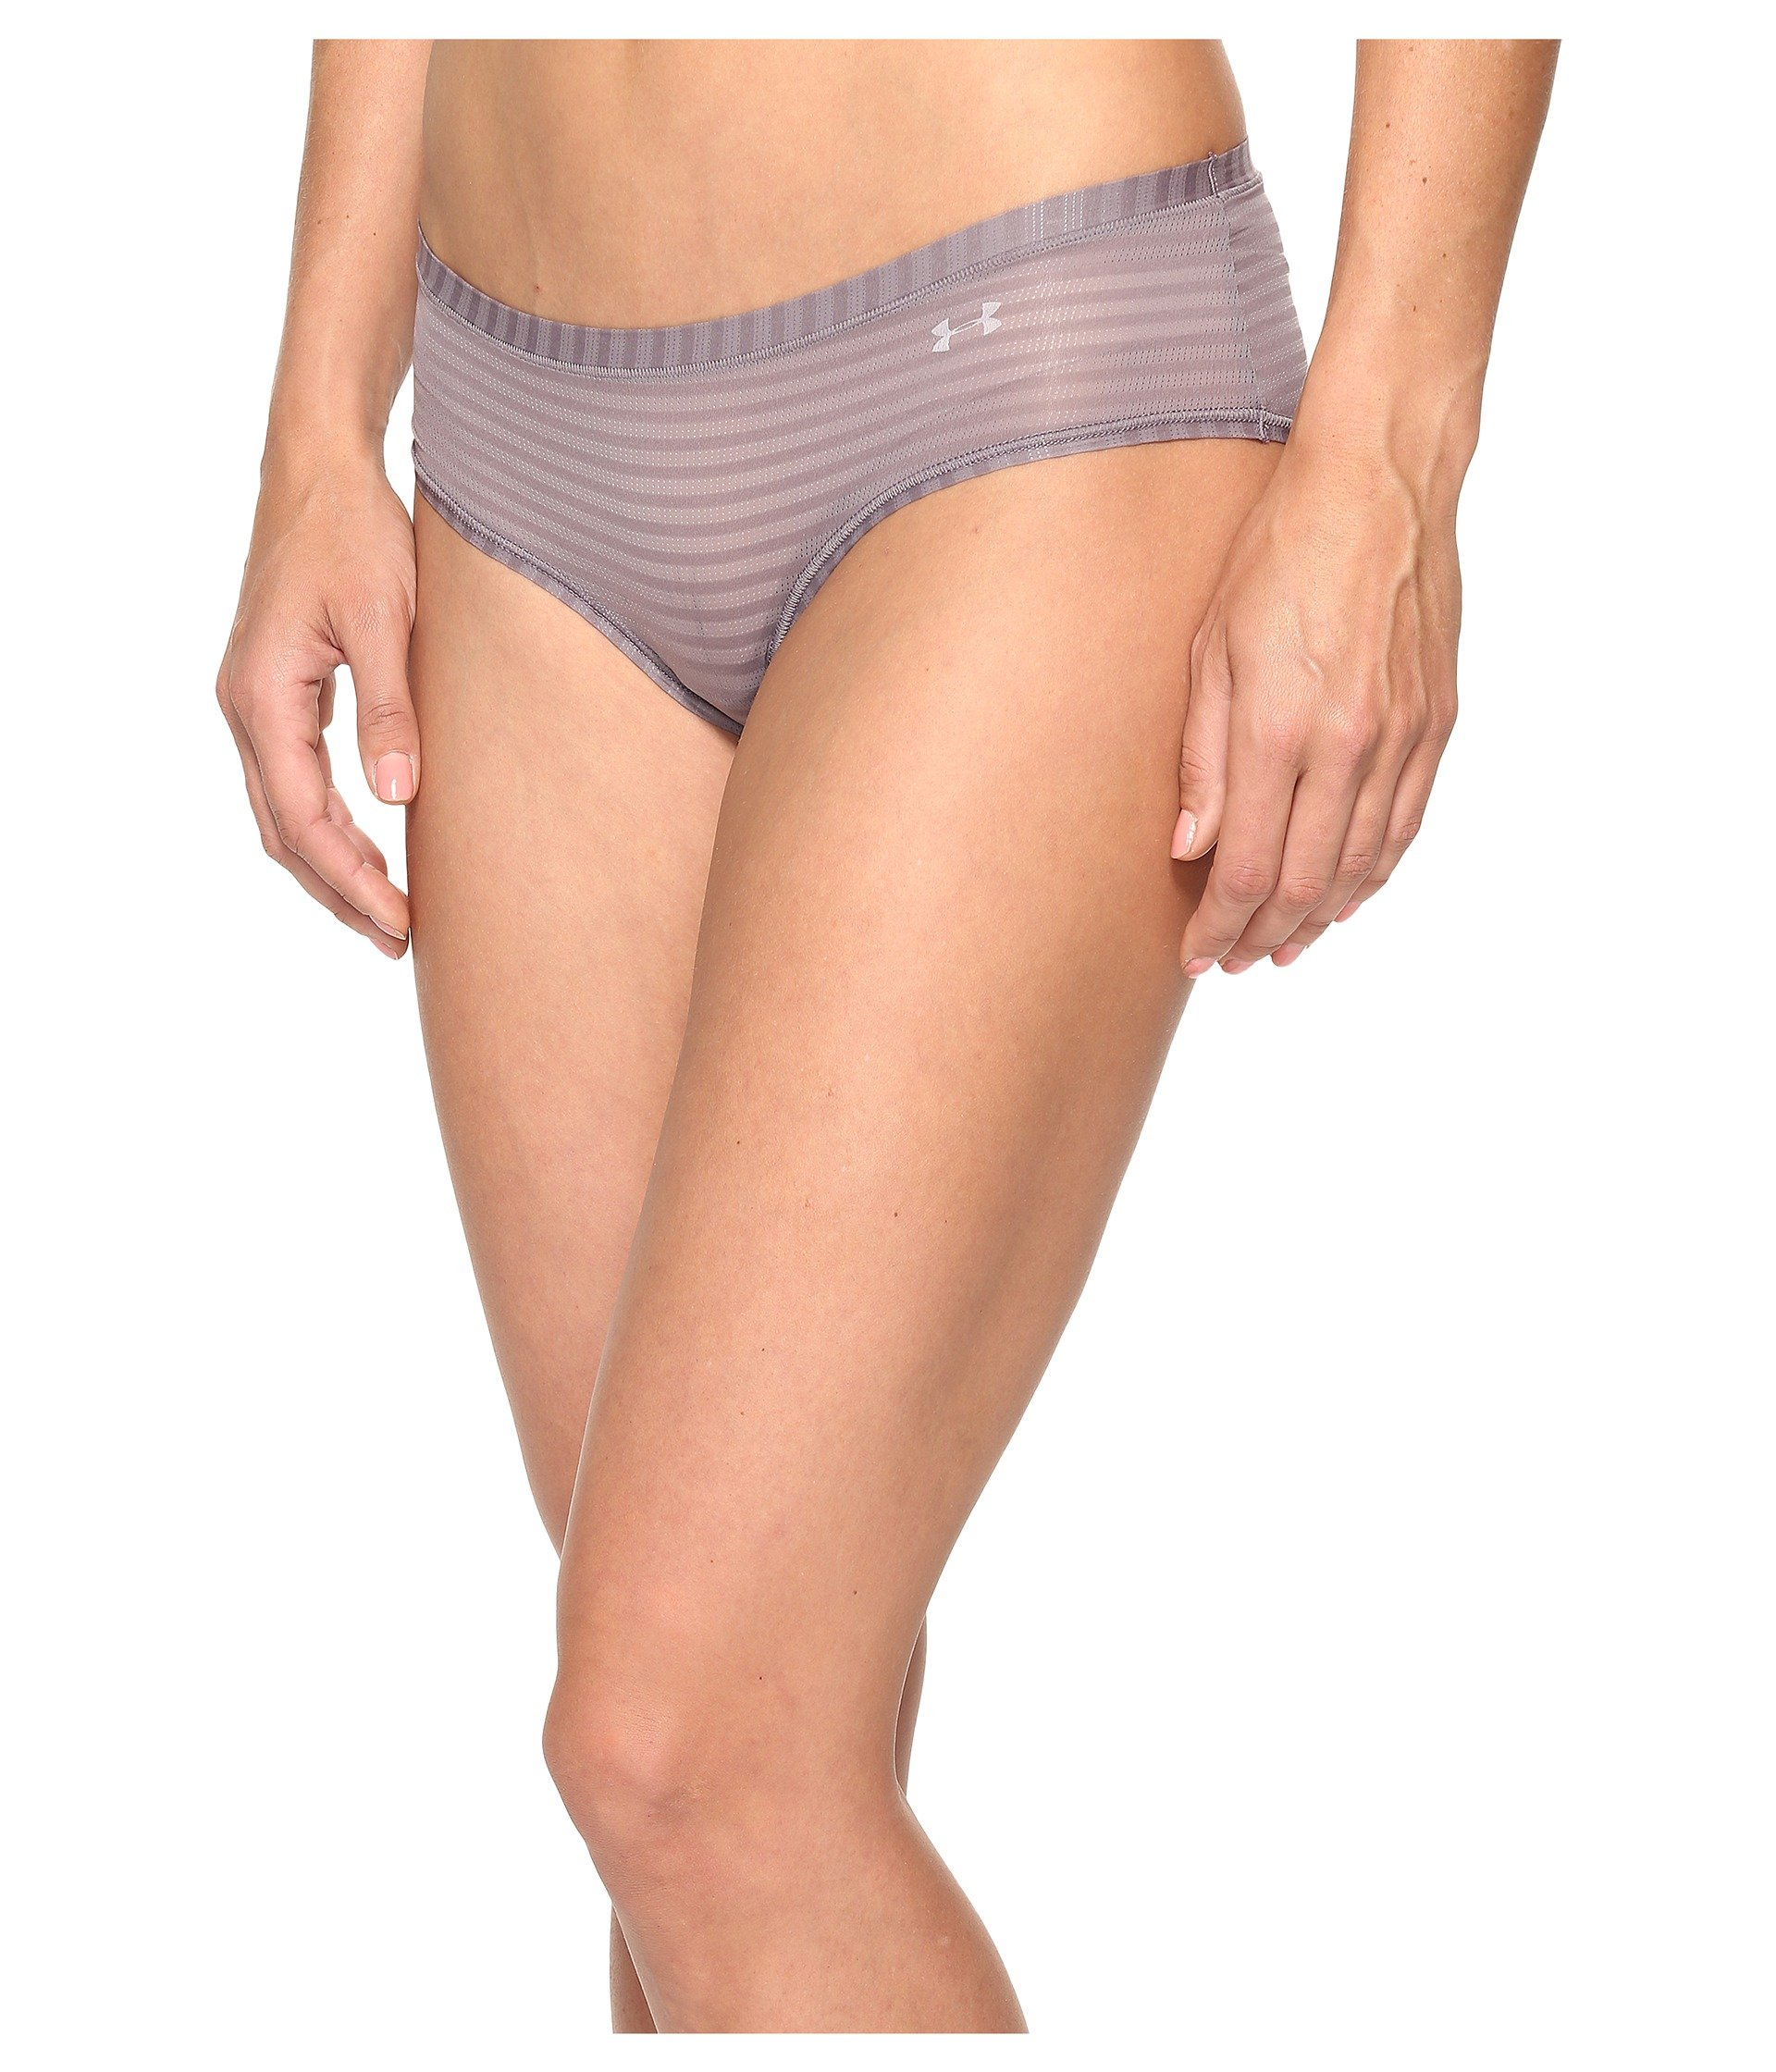 Panti Under Armour Sheers Hipster Novelty  + Under Armour en VeoyCompro.net